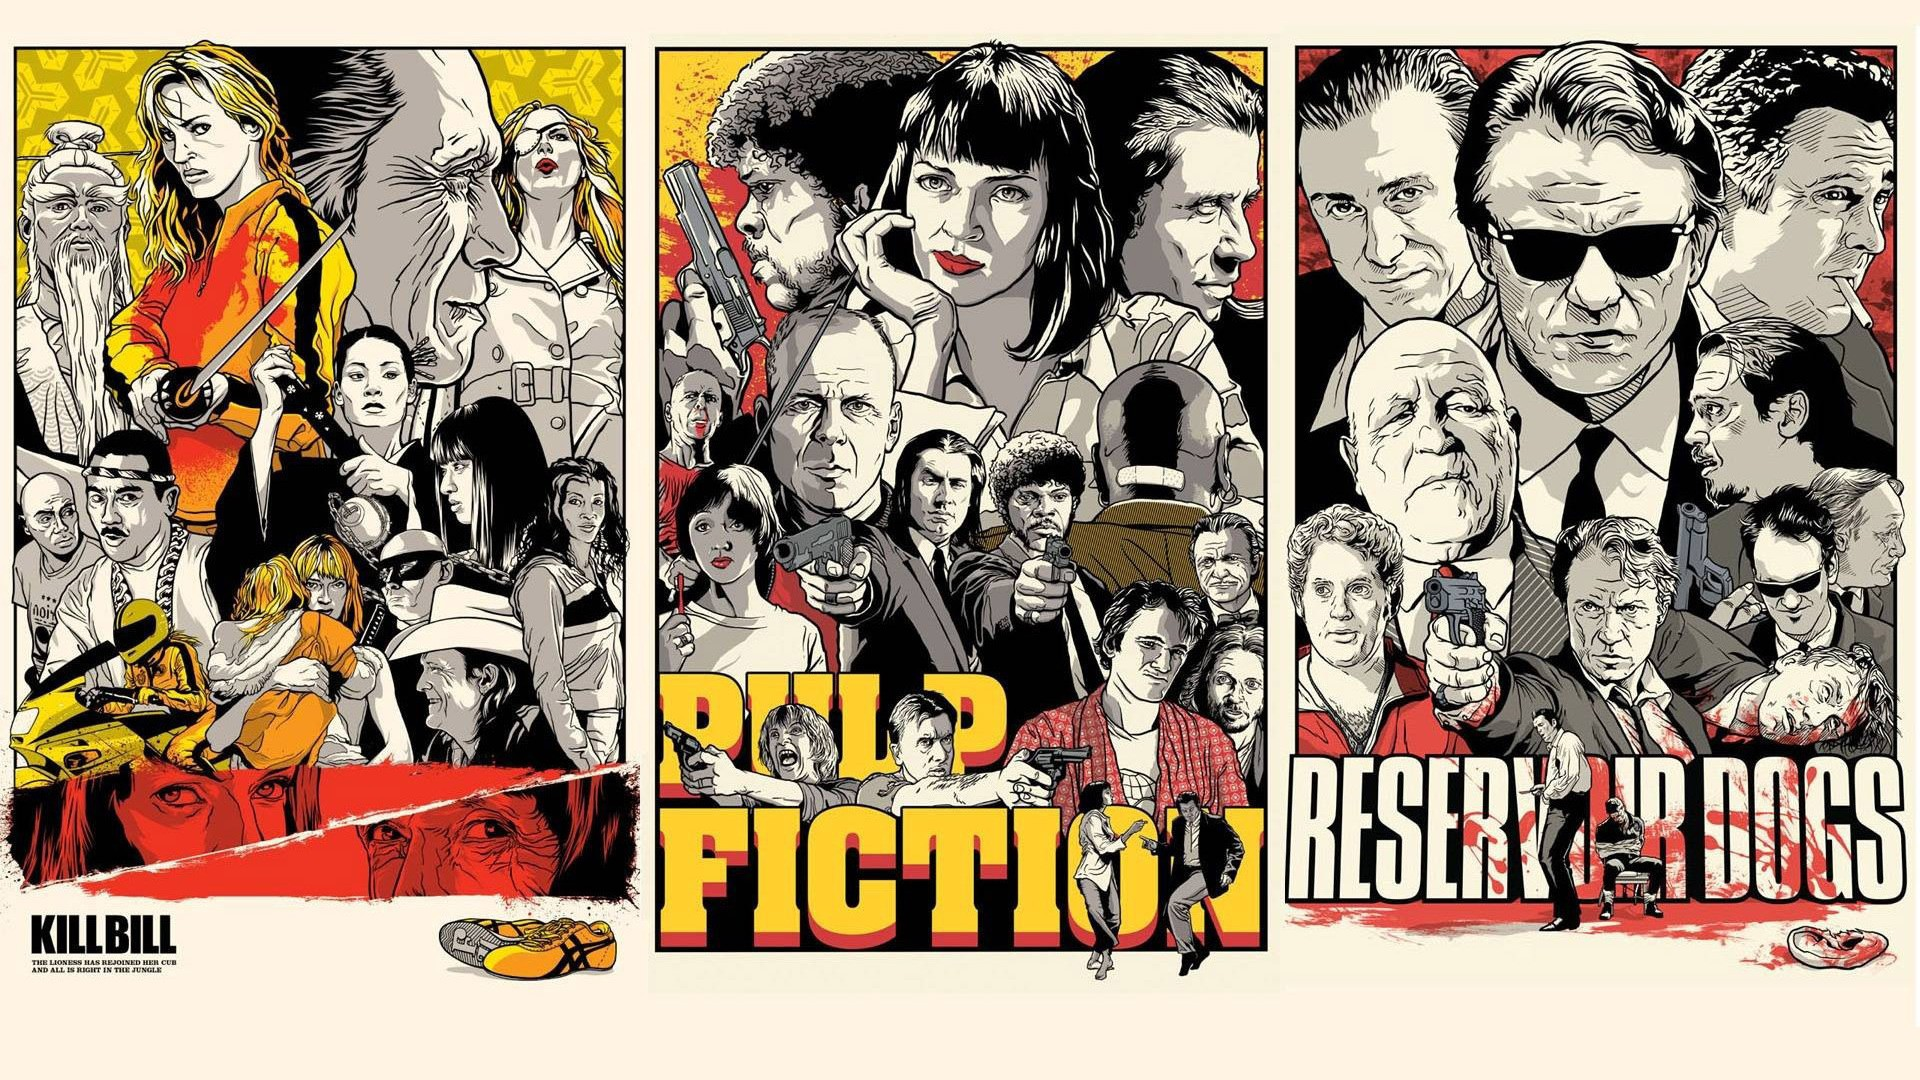 Pulp Fiction Wallpaper Download Free Full Hd Wallpapers For